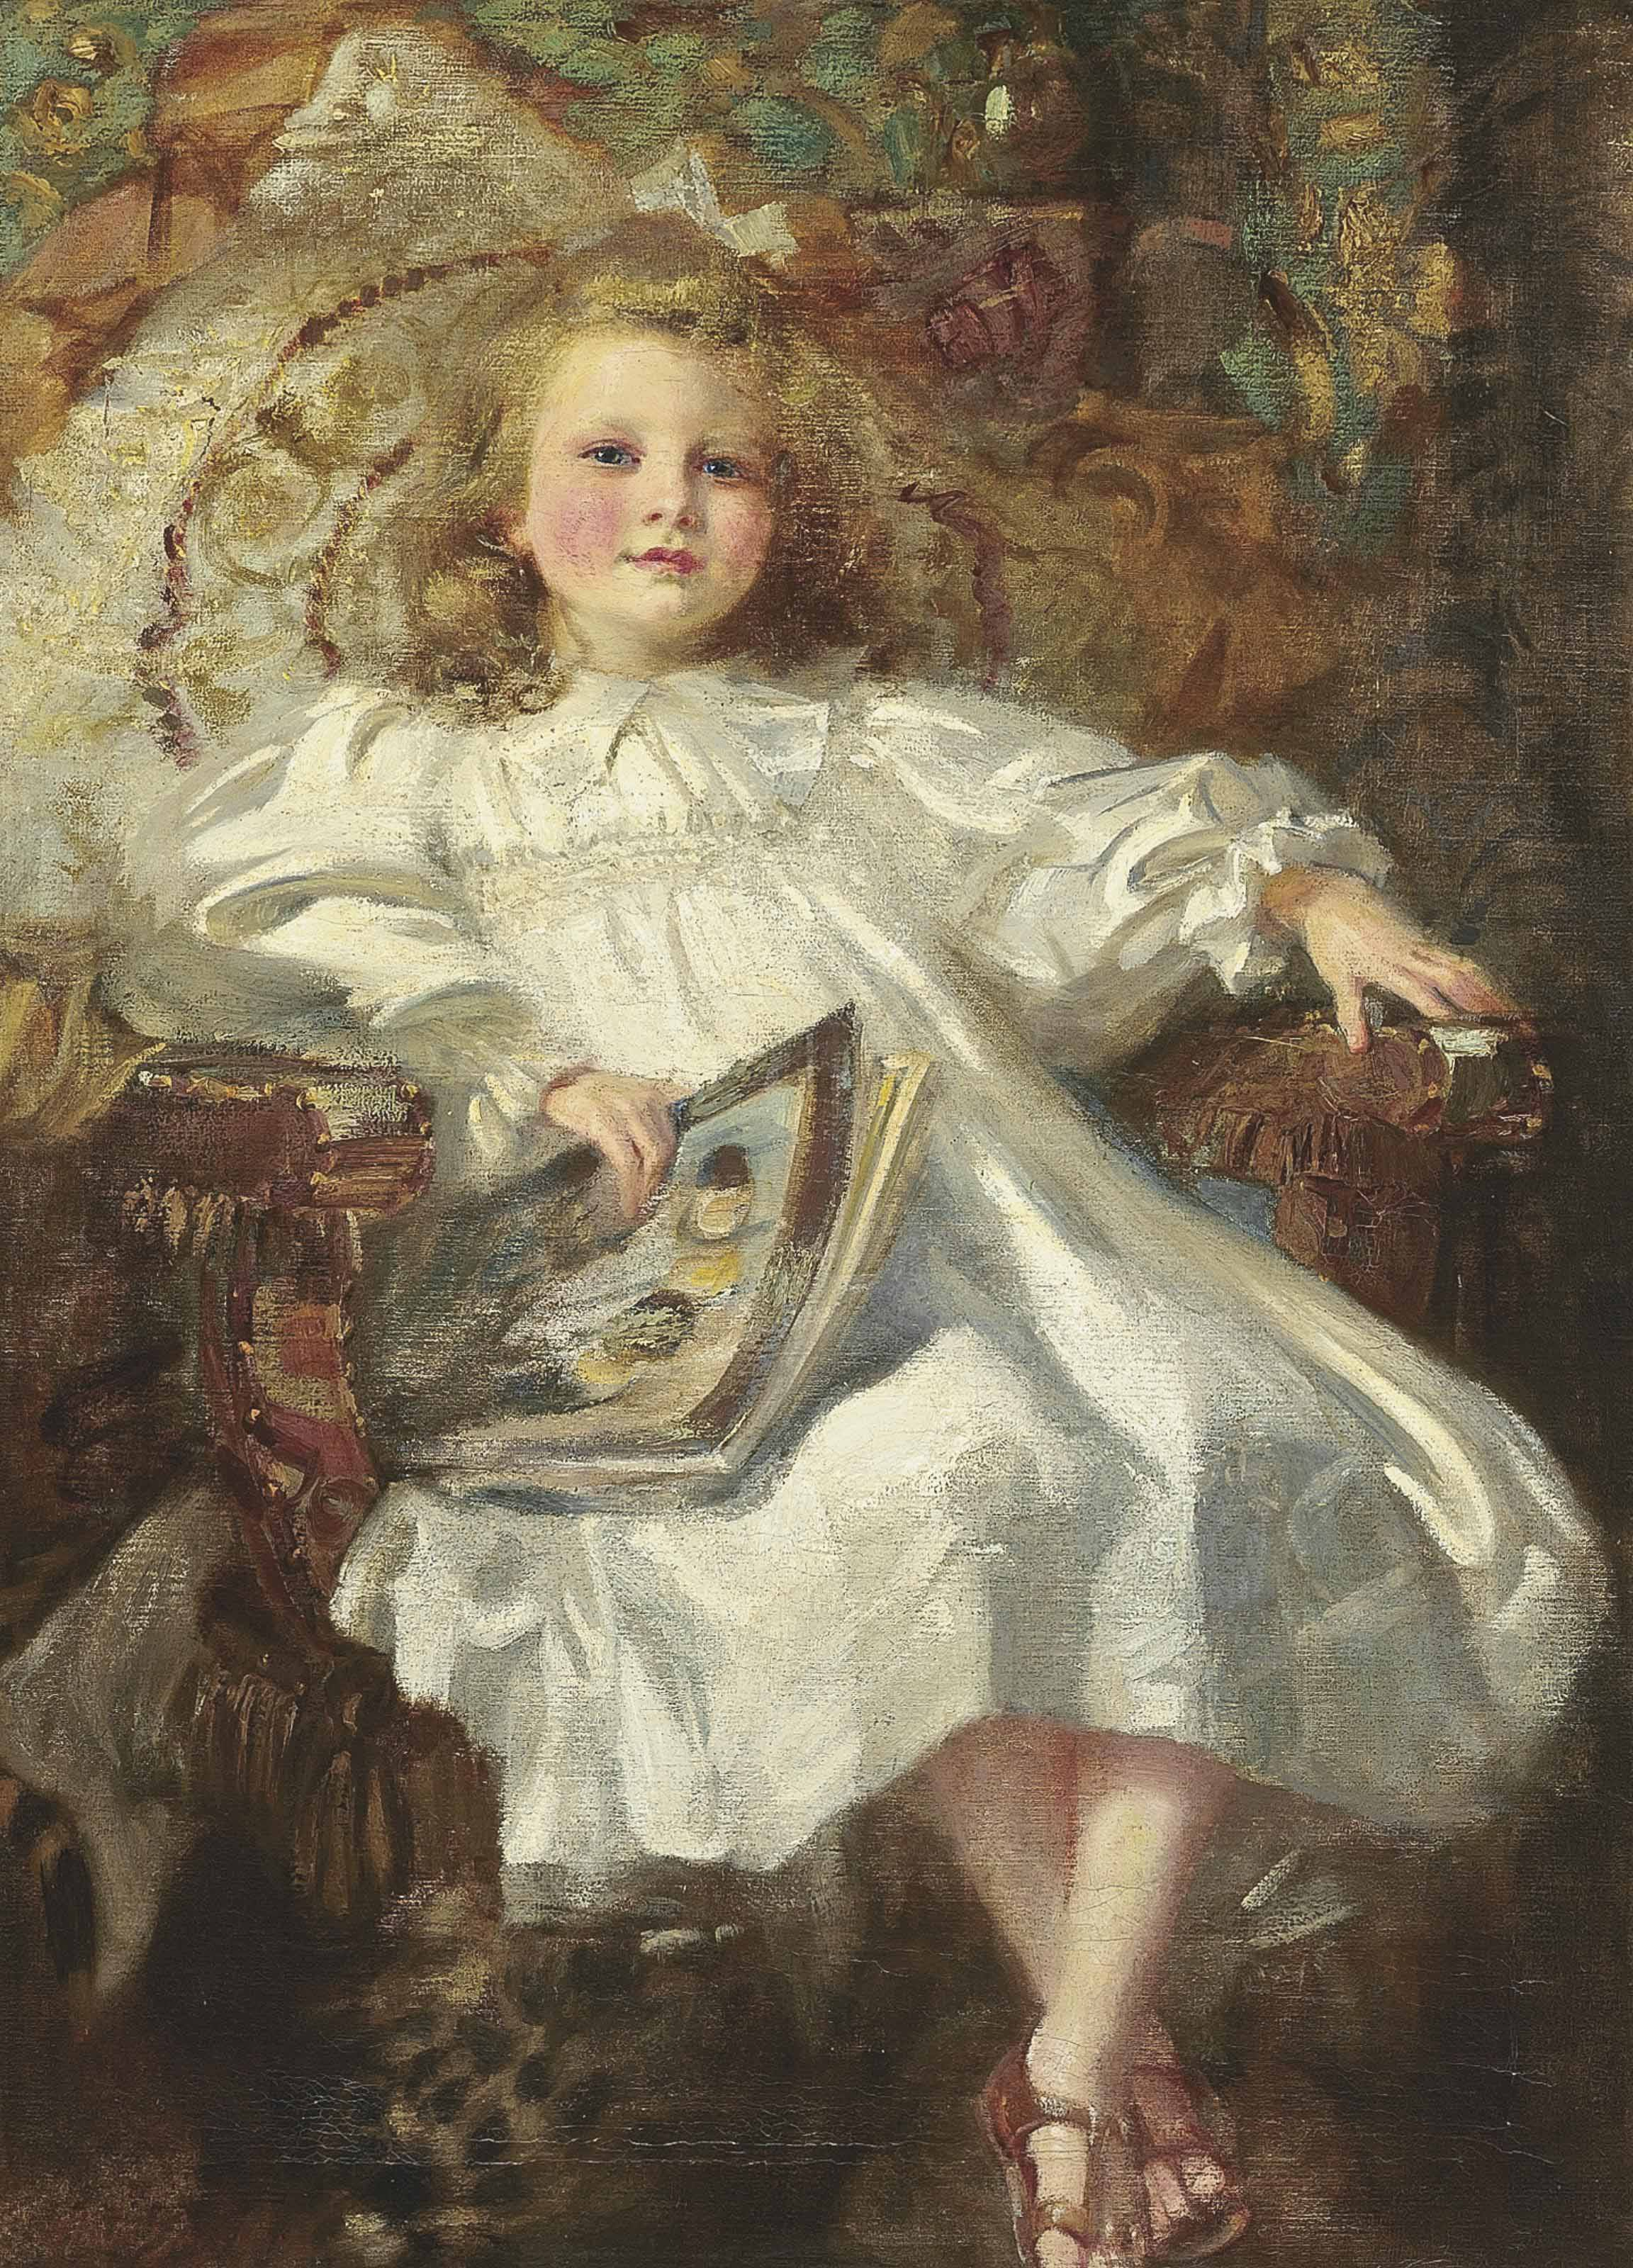 Portrait of a young girl, seated full-length, in a white dress and sandals